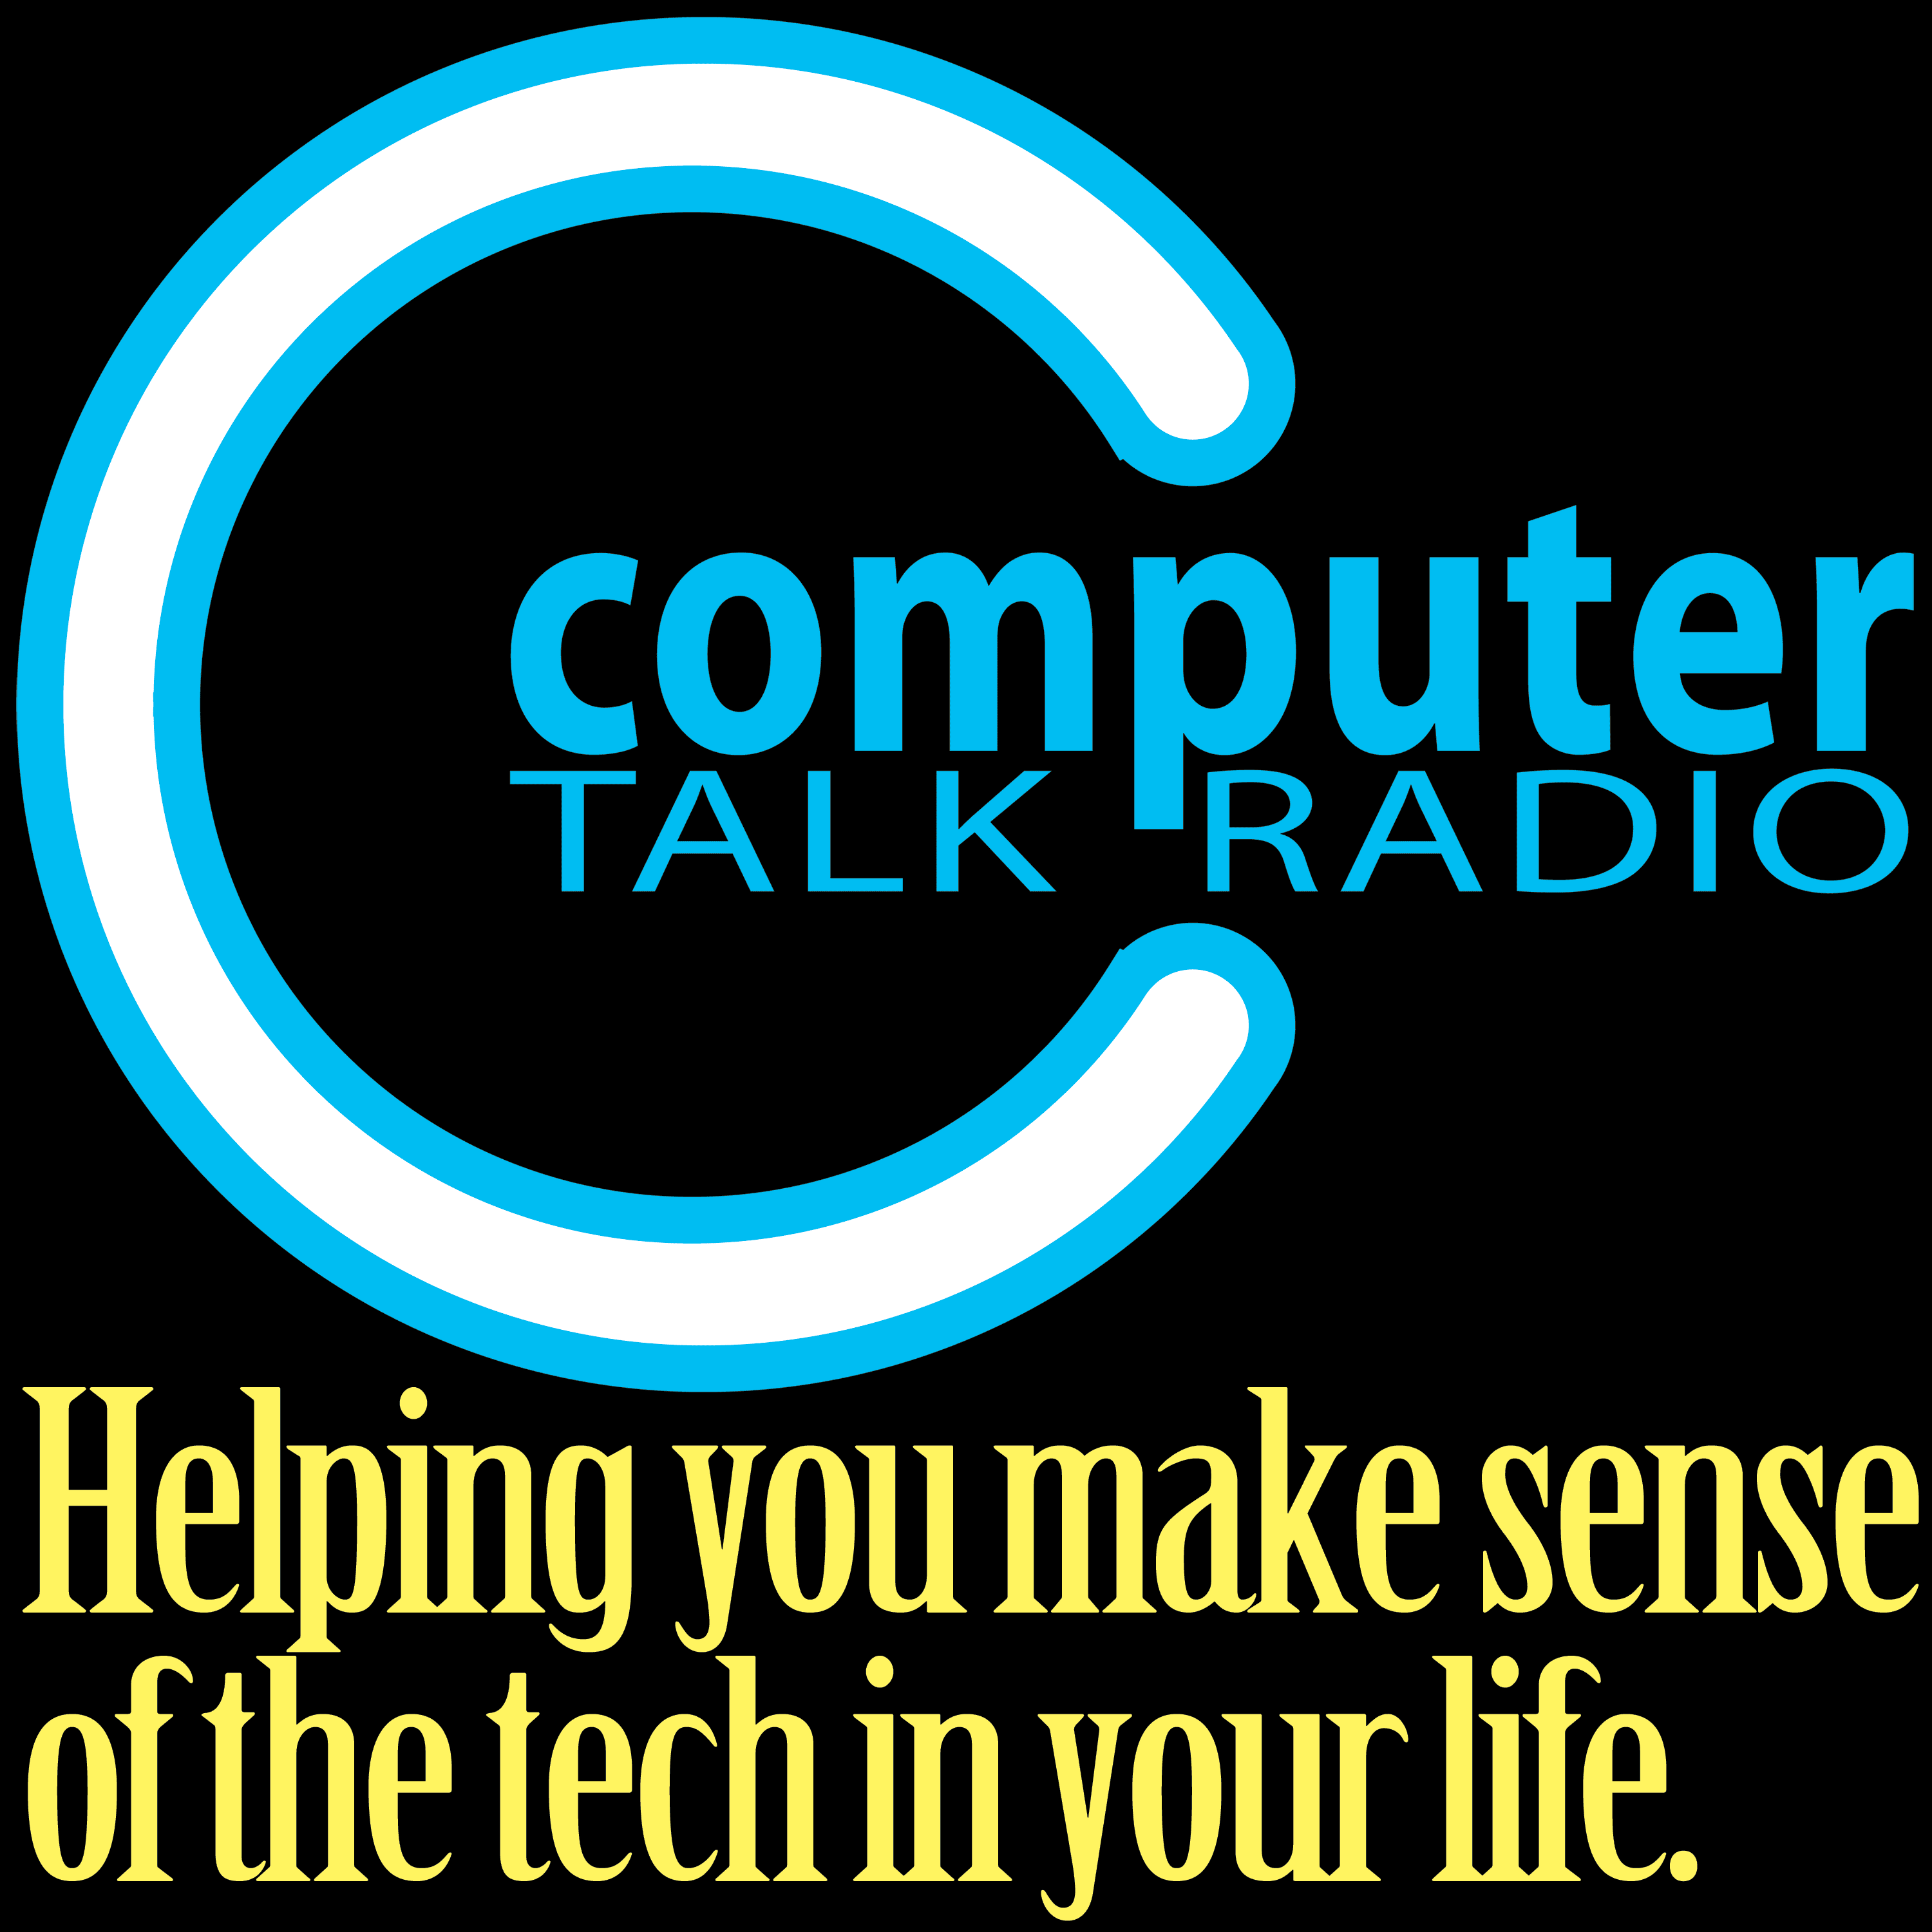 A highlight from Computer Talk Radio Broadcast 10-16-2021